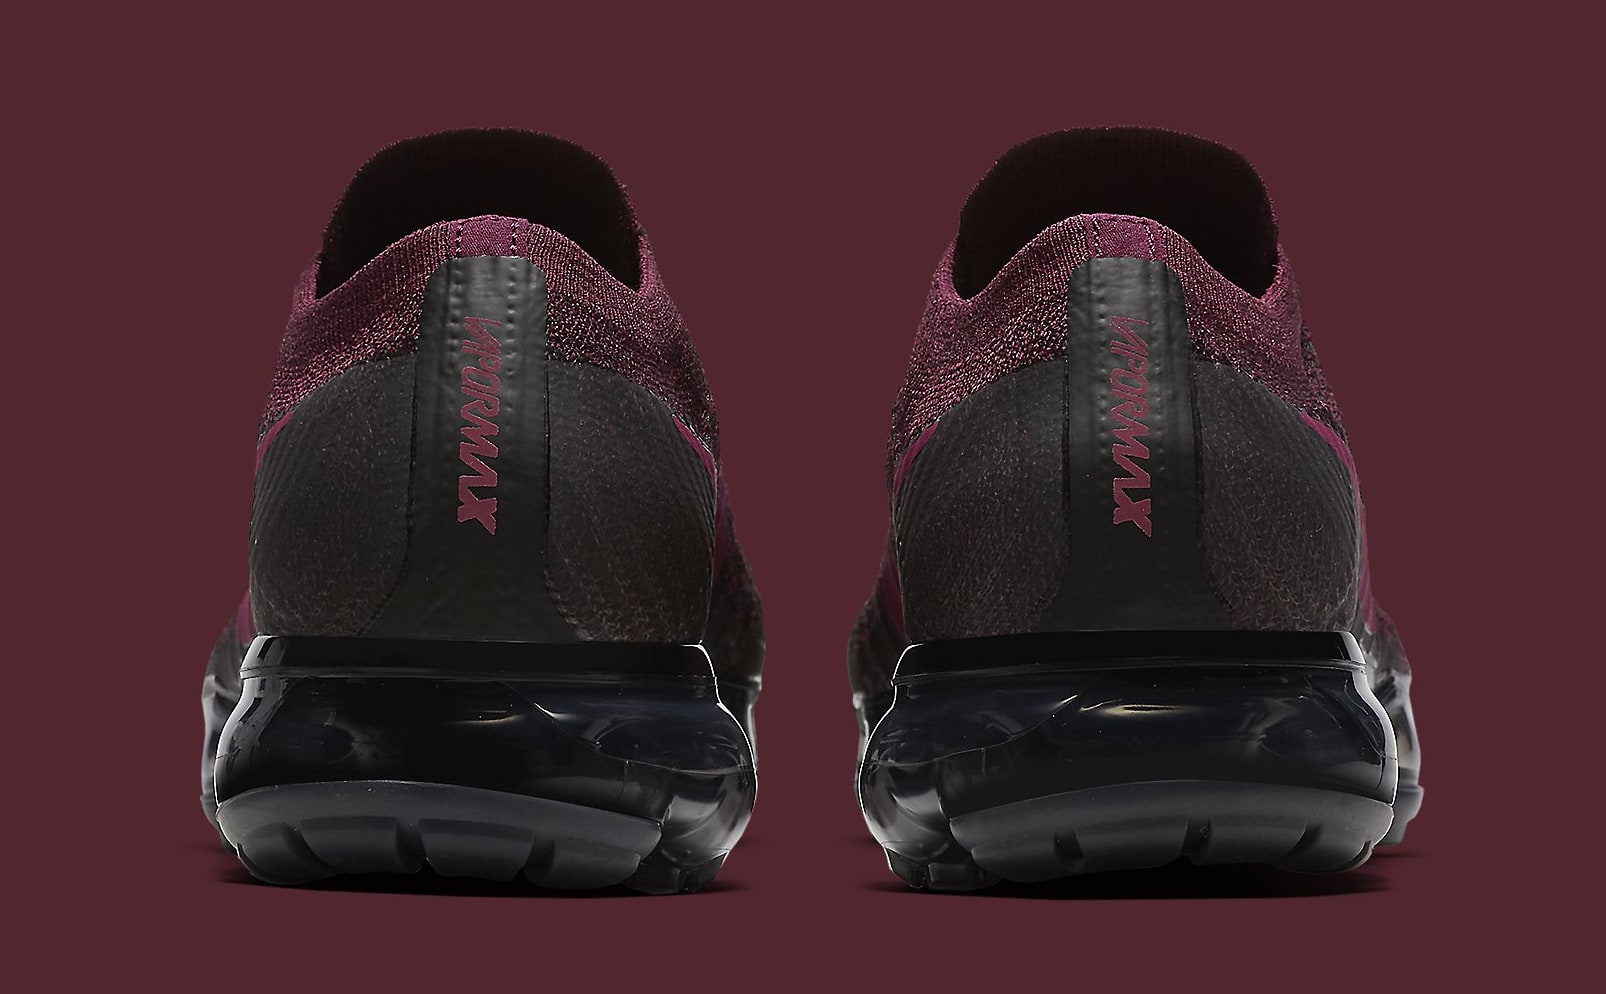 dbd3666ec4e0b2 Cheap Nike CDG x Cheap Nike Vapormax Size 6.5 Low Top Sneakers for Sale